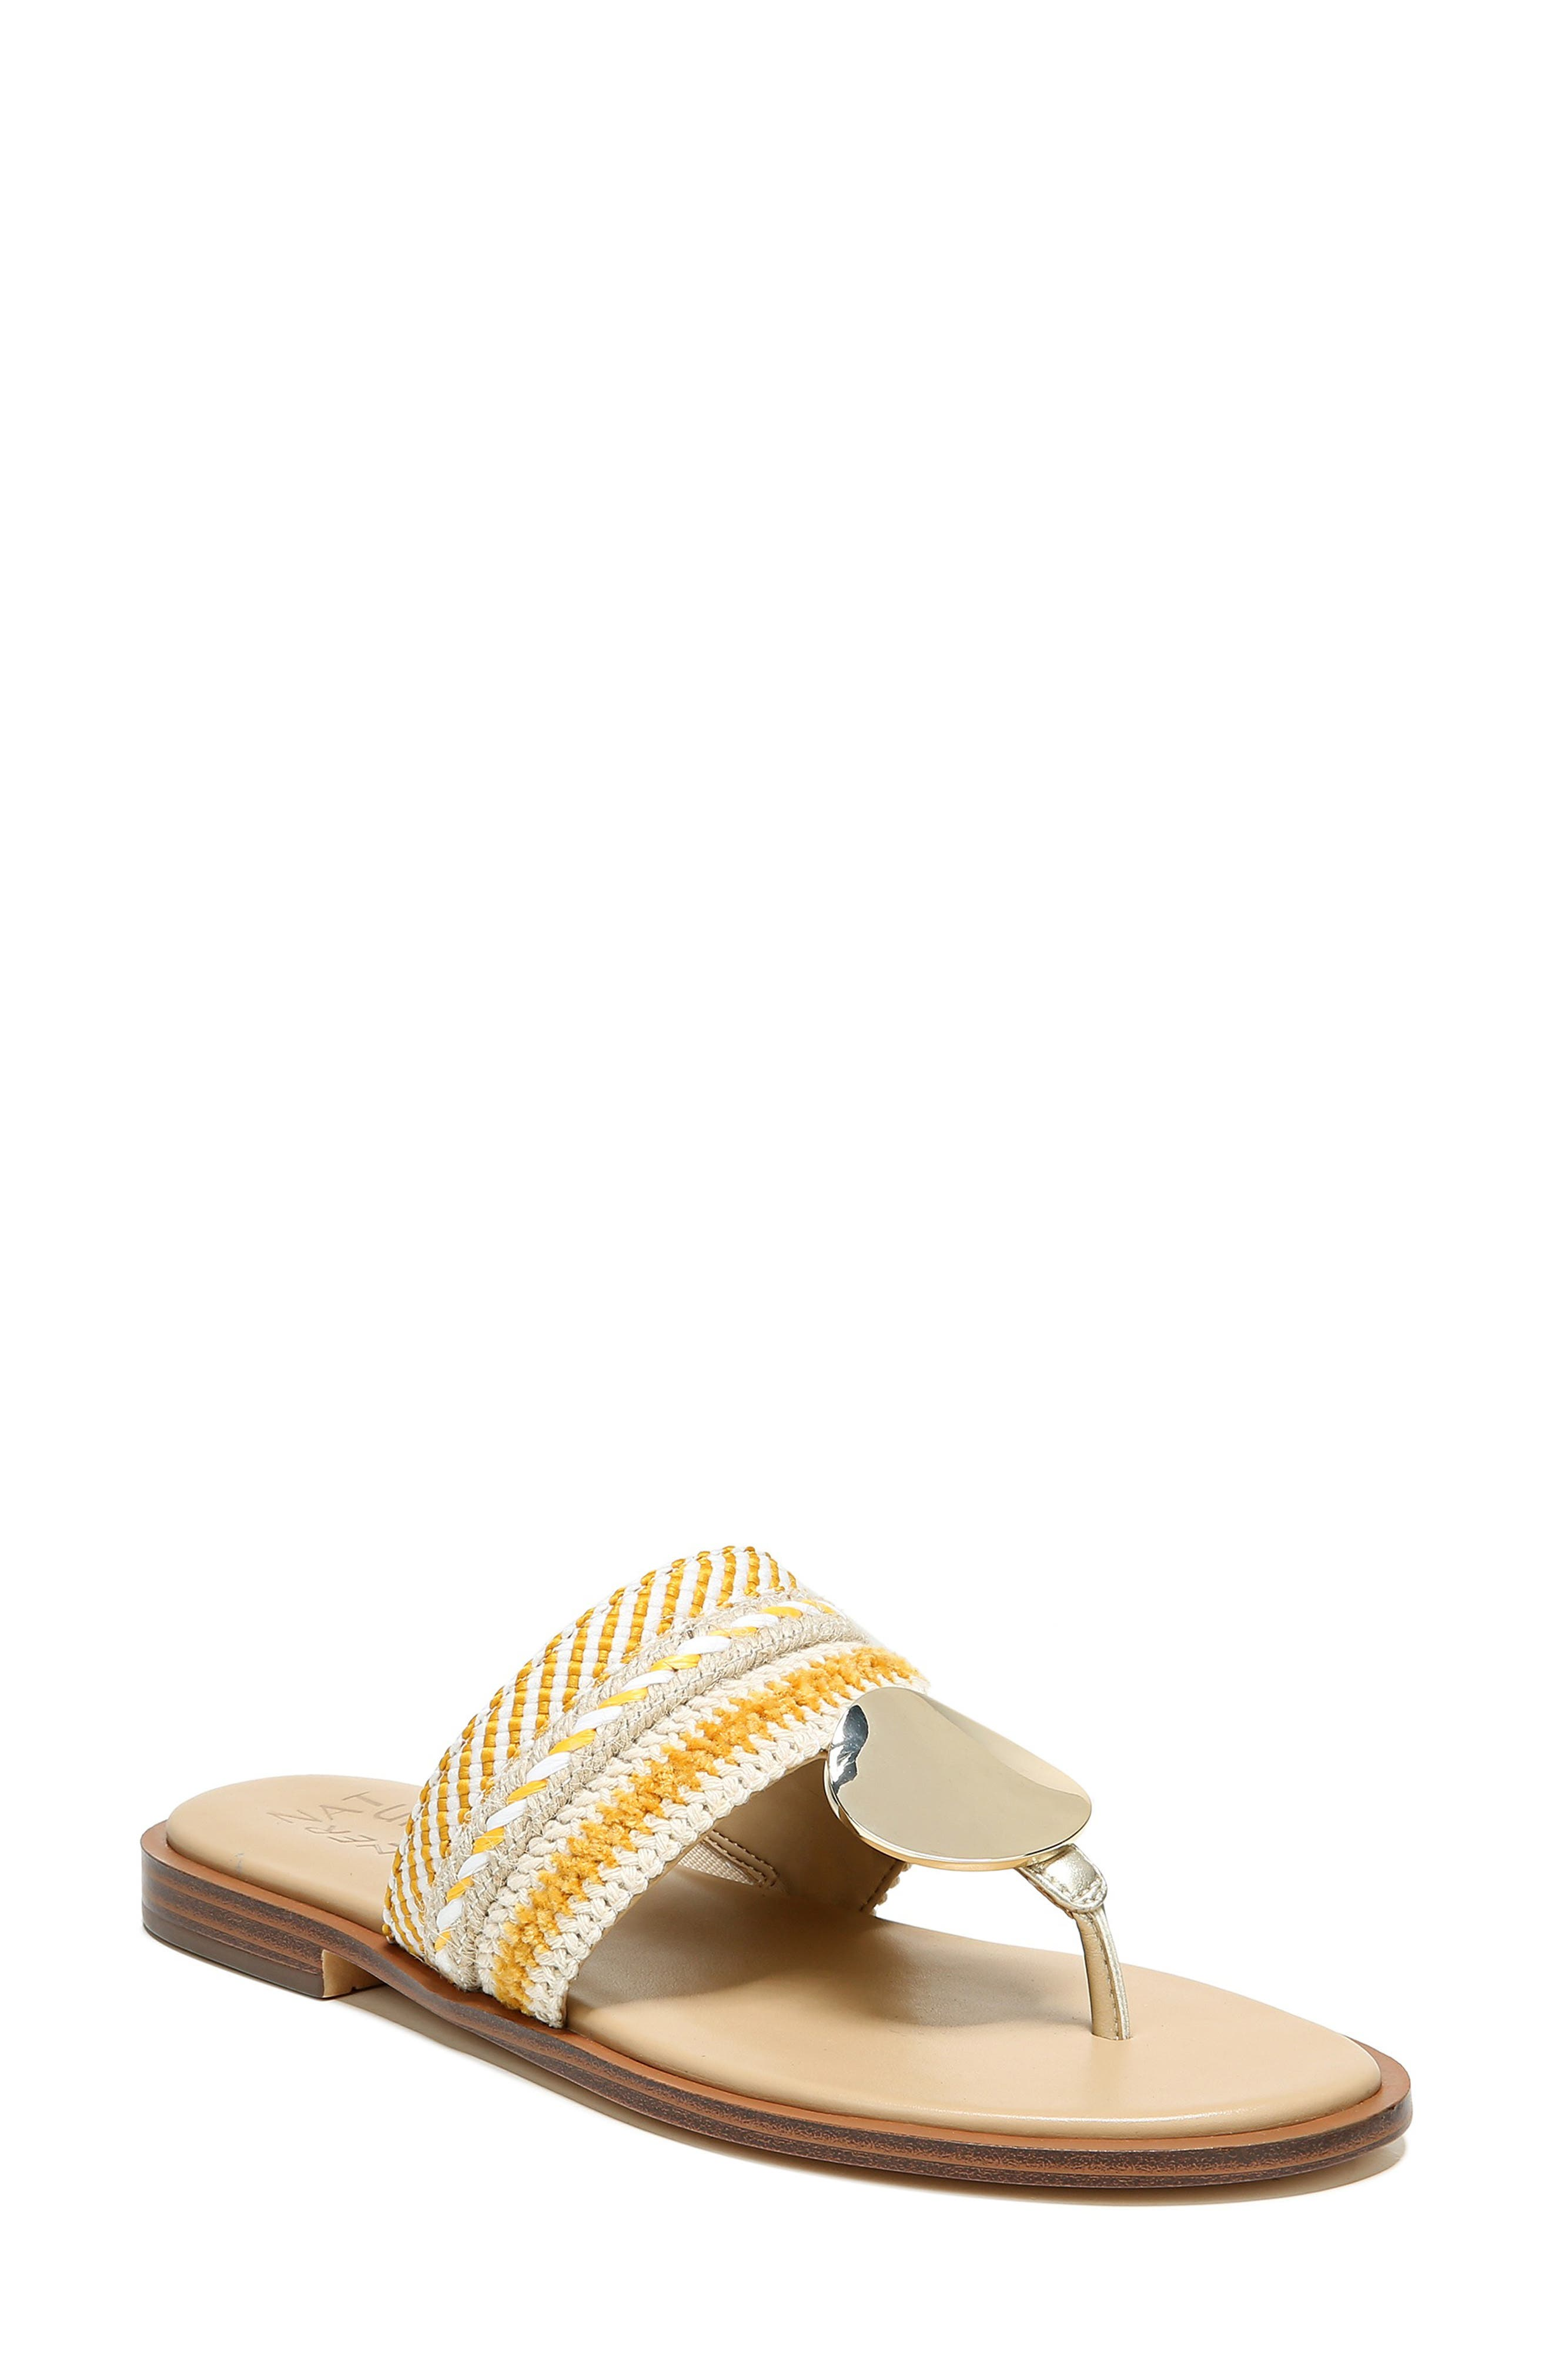 This comfortable thong-strap slide on a Contour Plus foam-cushioned insole is dressed up with a shimmering medallion and your choice of vibrant textures. Style Name: Naturalizer Frankie Sandal (Women). Style Number: 6015155. Available in stores.